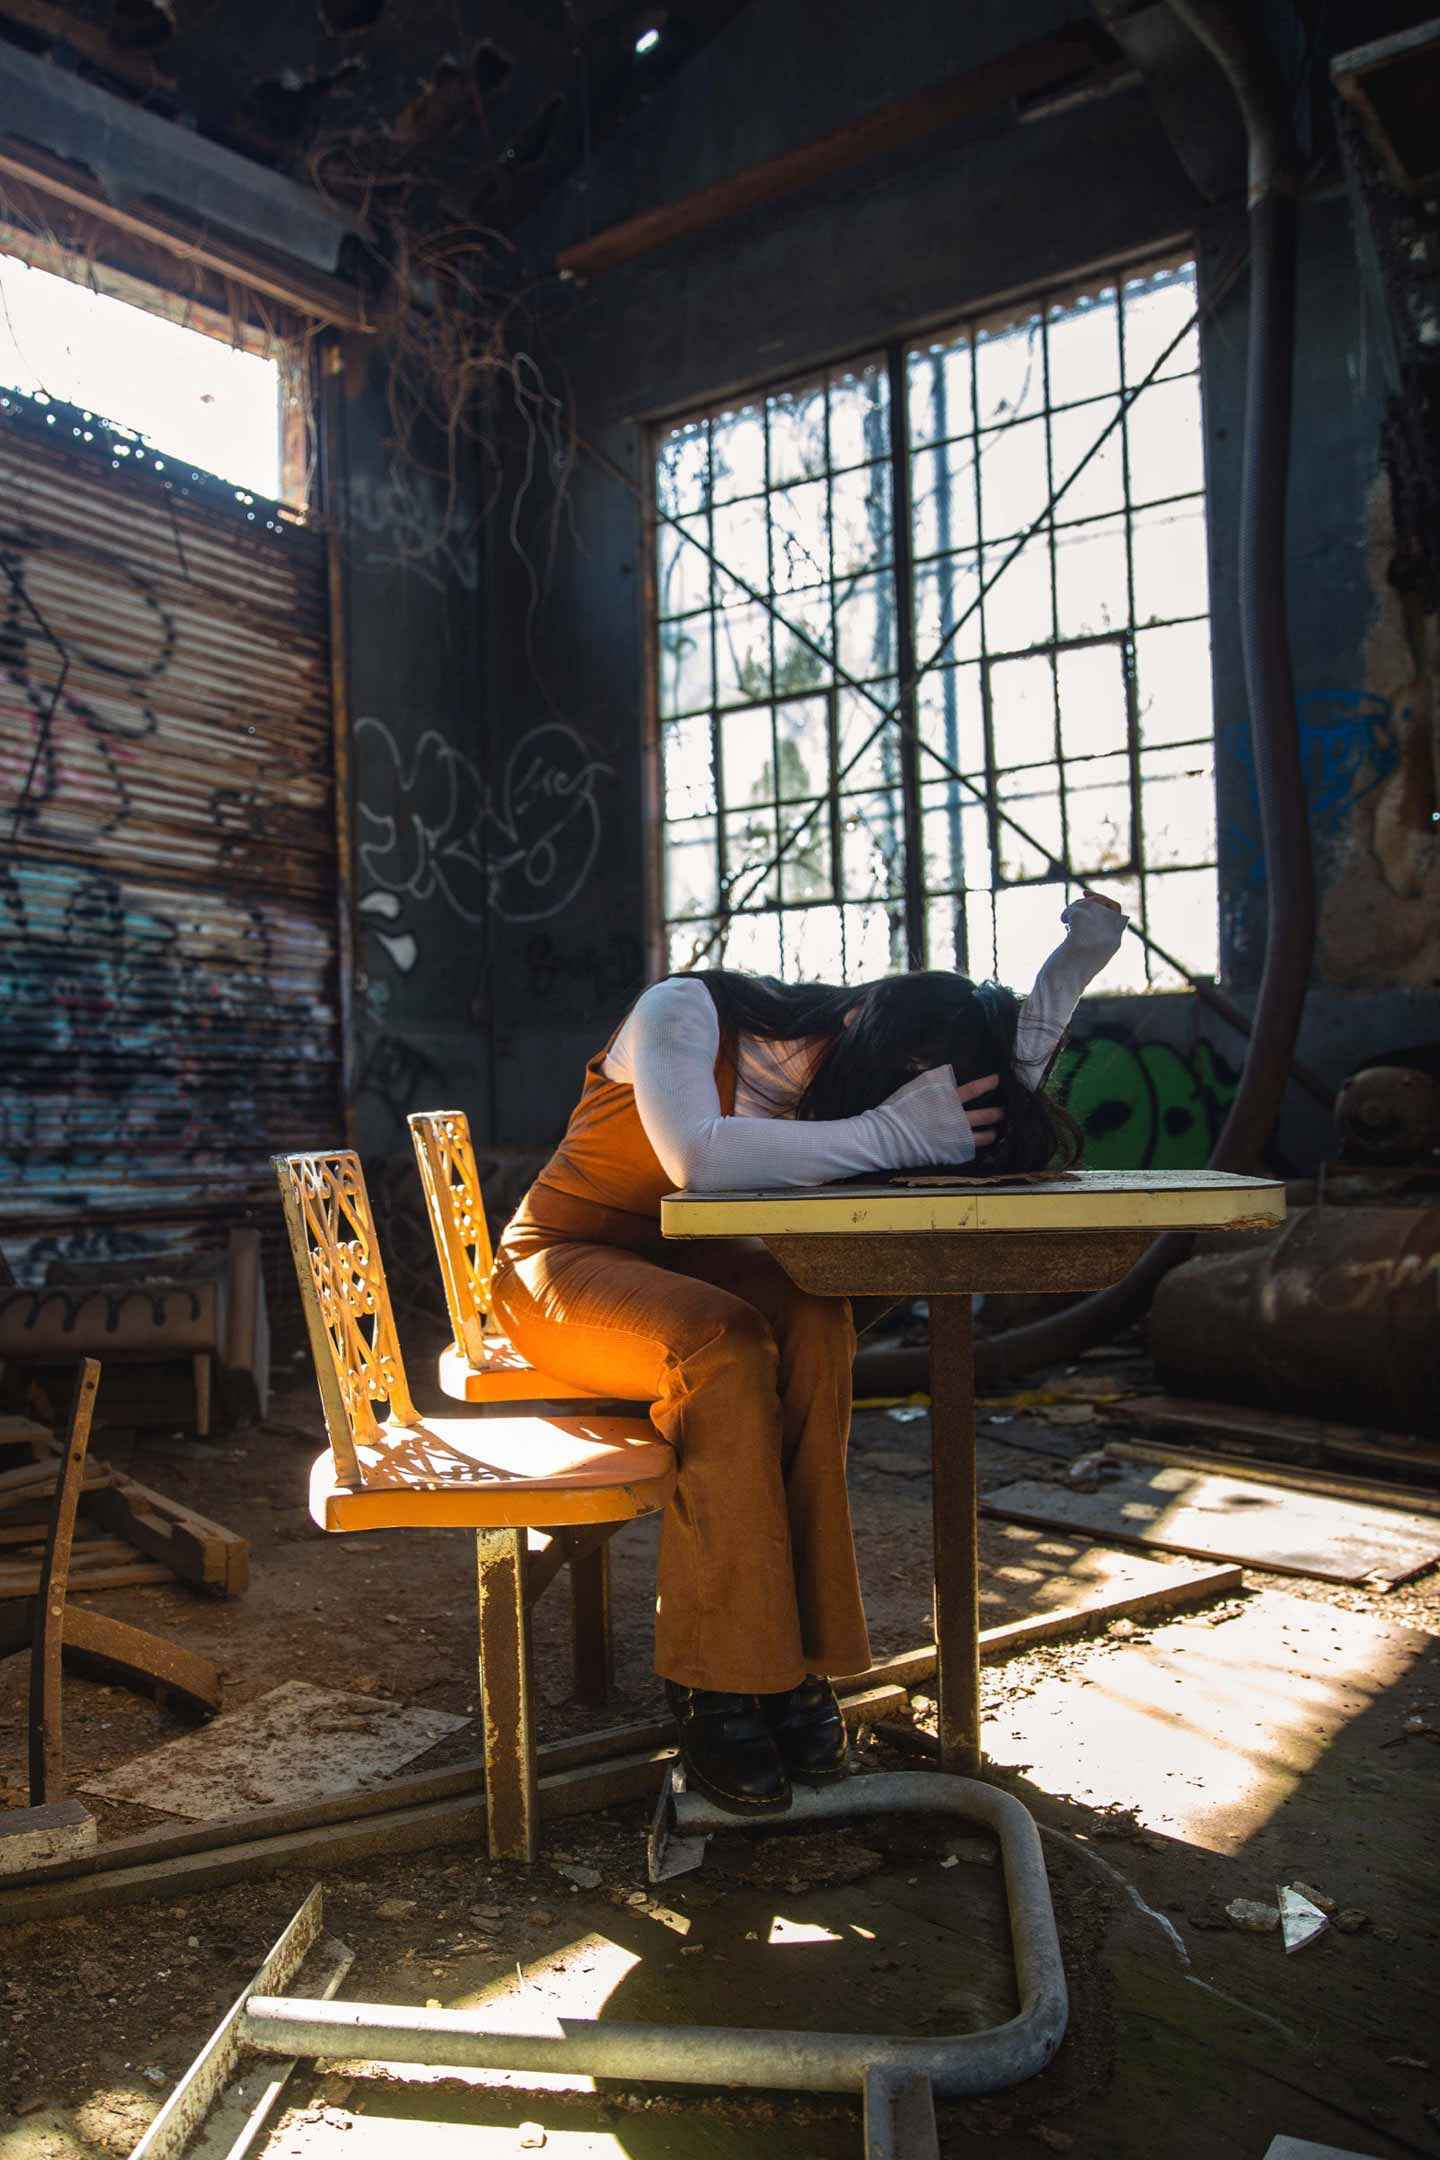 """An in depth review of Lynn Crilly's book """"Hope with Eating Disorders"""" by the parent and carer of an ED sufferer. A practical book on these mental illnesses. Hope with Eating Disorders book review on Falcondale Life blog. Image description: A girl hides her face in her arms, sitting at a dining table in a tatty old room."""